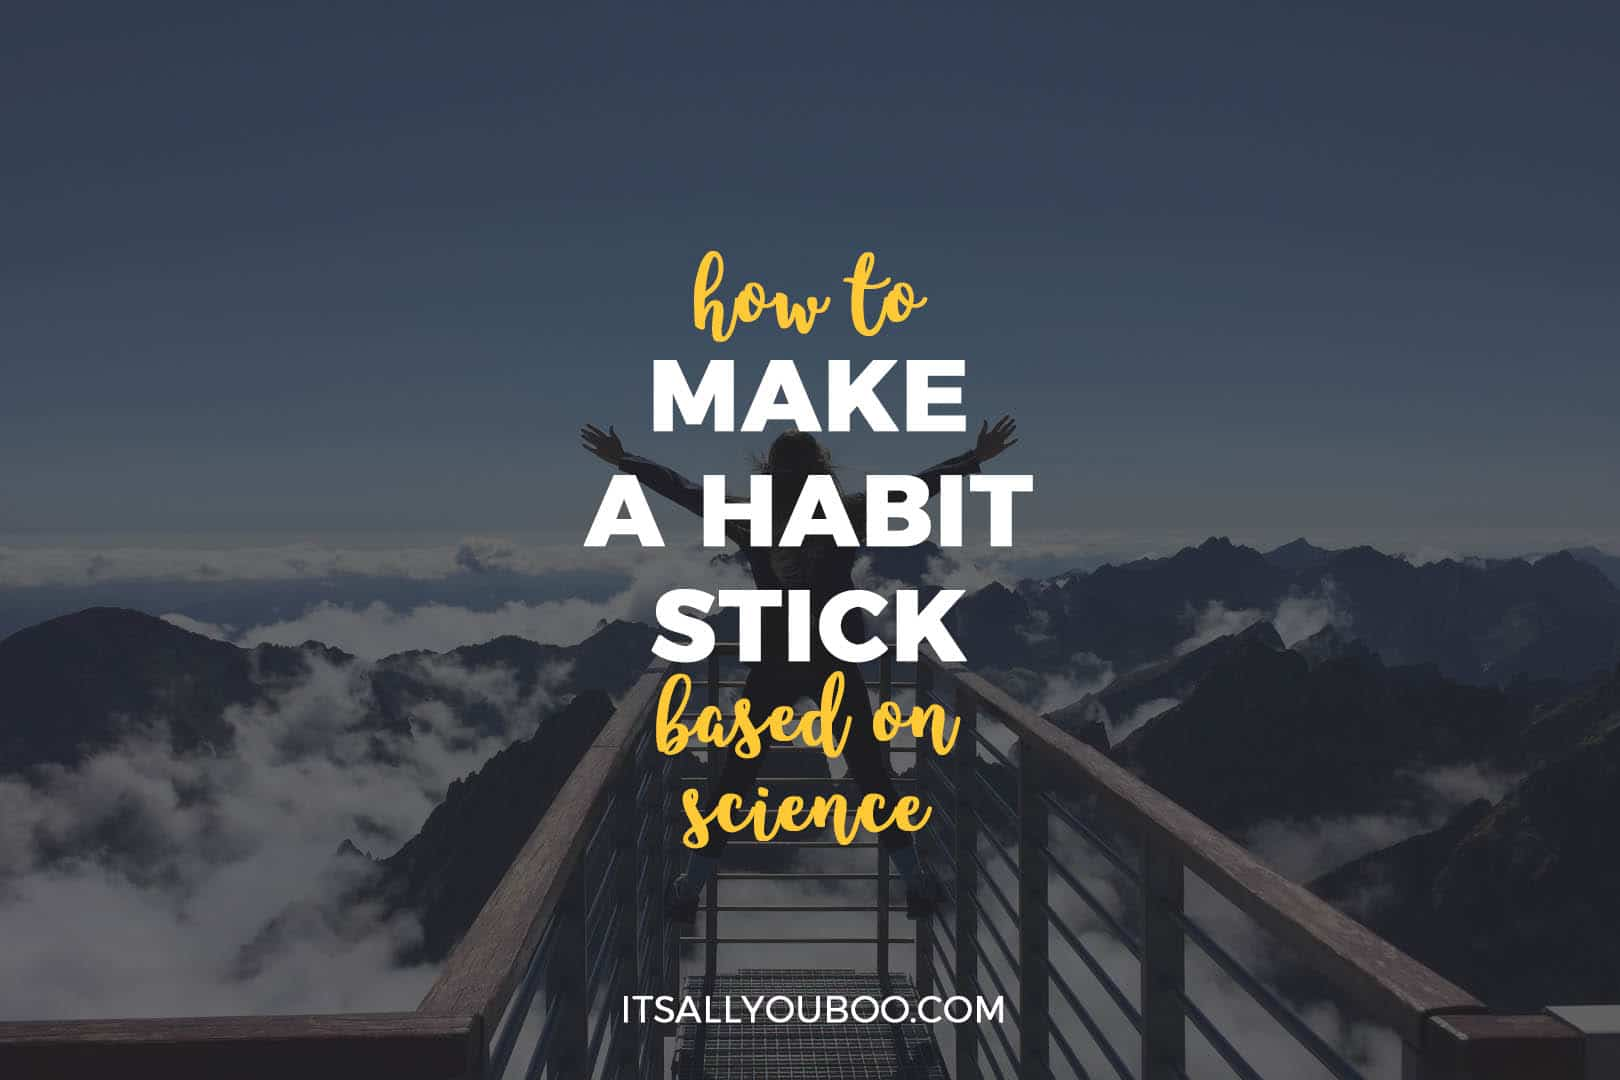 How to Make a Habit Stick Based on Science